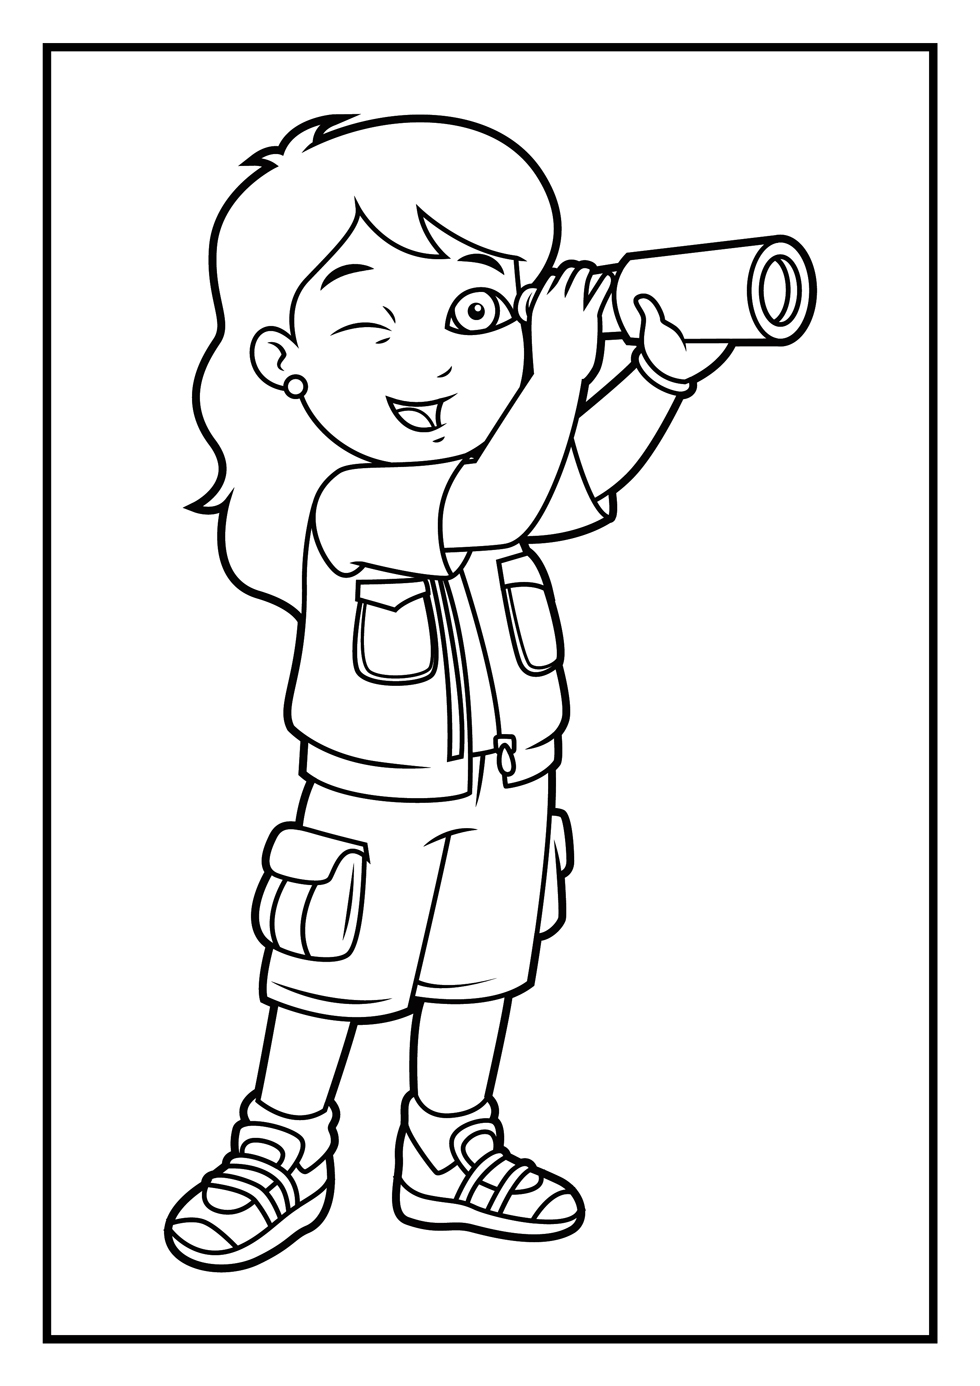 Diego with Dora coloring pages for kids, printable free | coloing-4kids.com | 1386x980